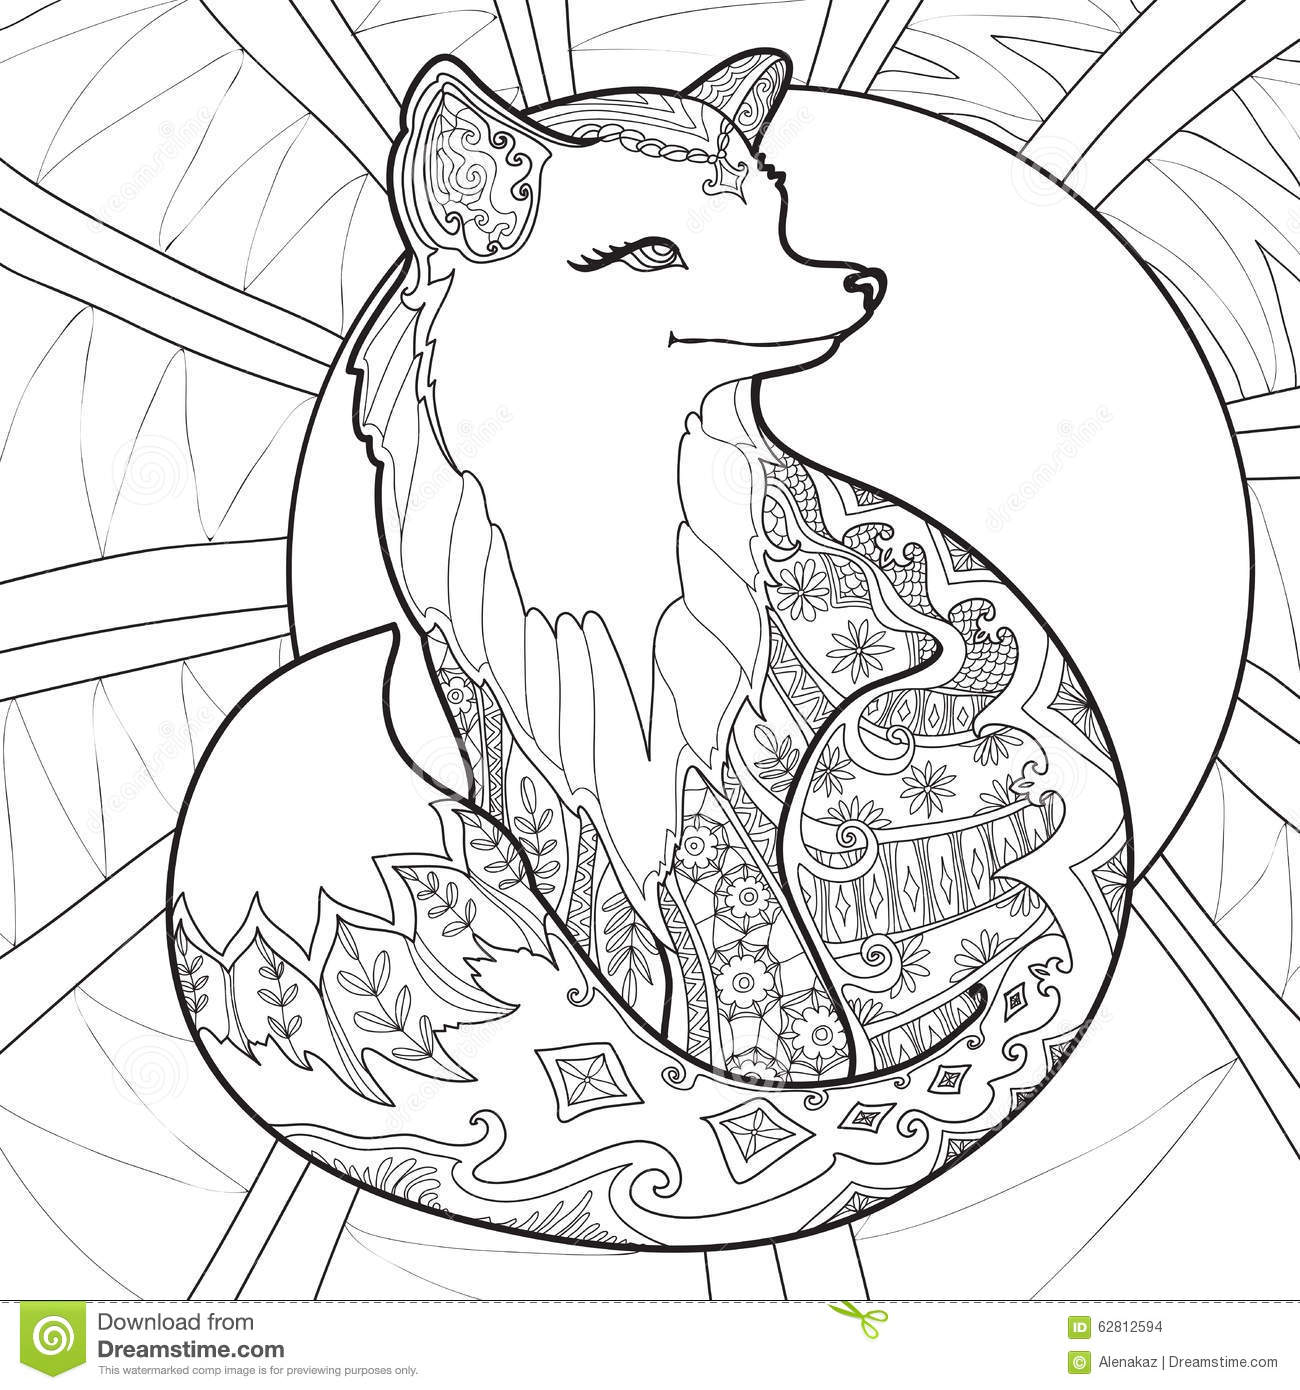 Coloring page with fox stock vector. Illustration of ...